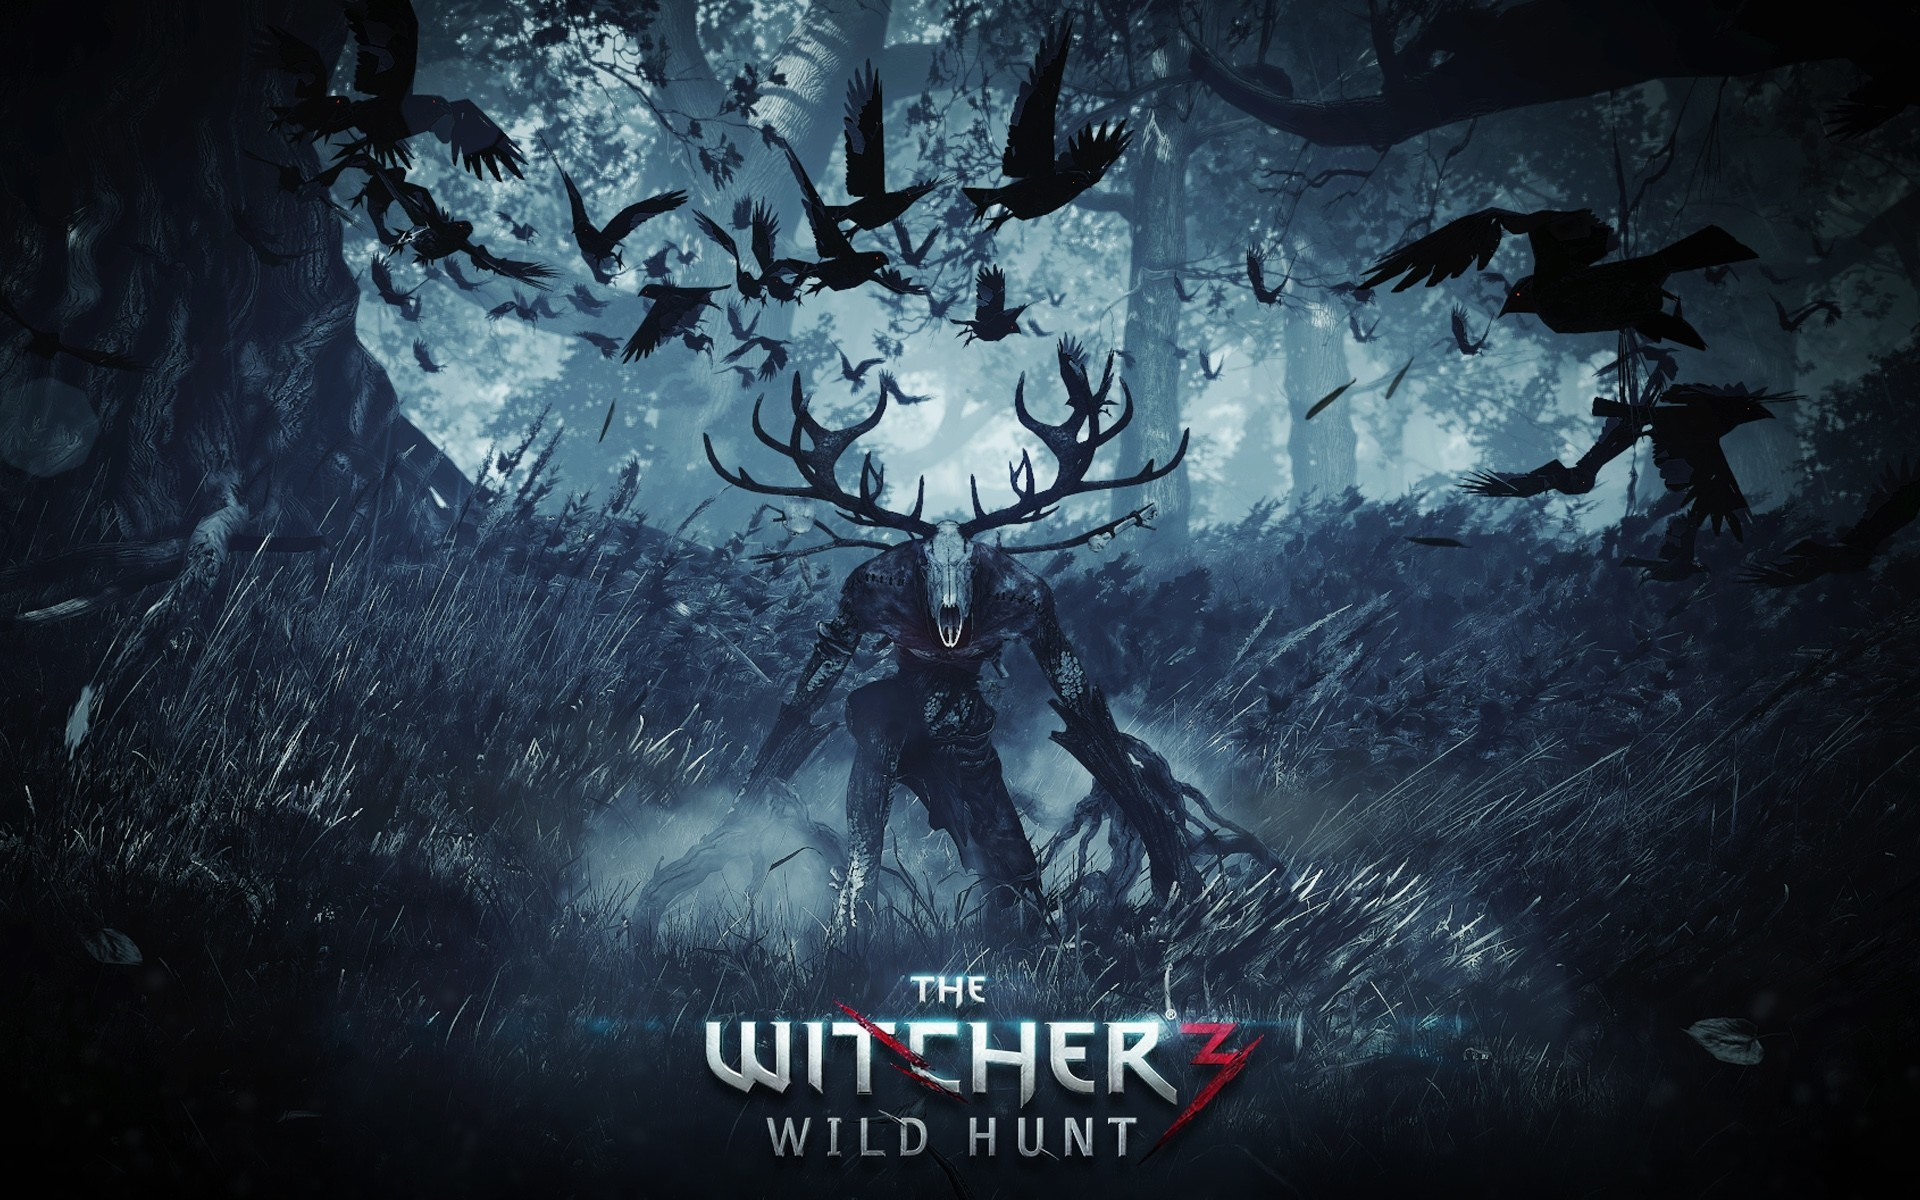 The Witcher 3: Wild Hunt PC Game: https://pcgames42.com